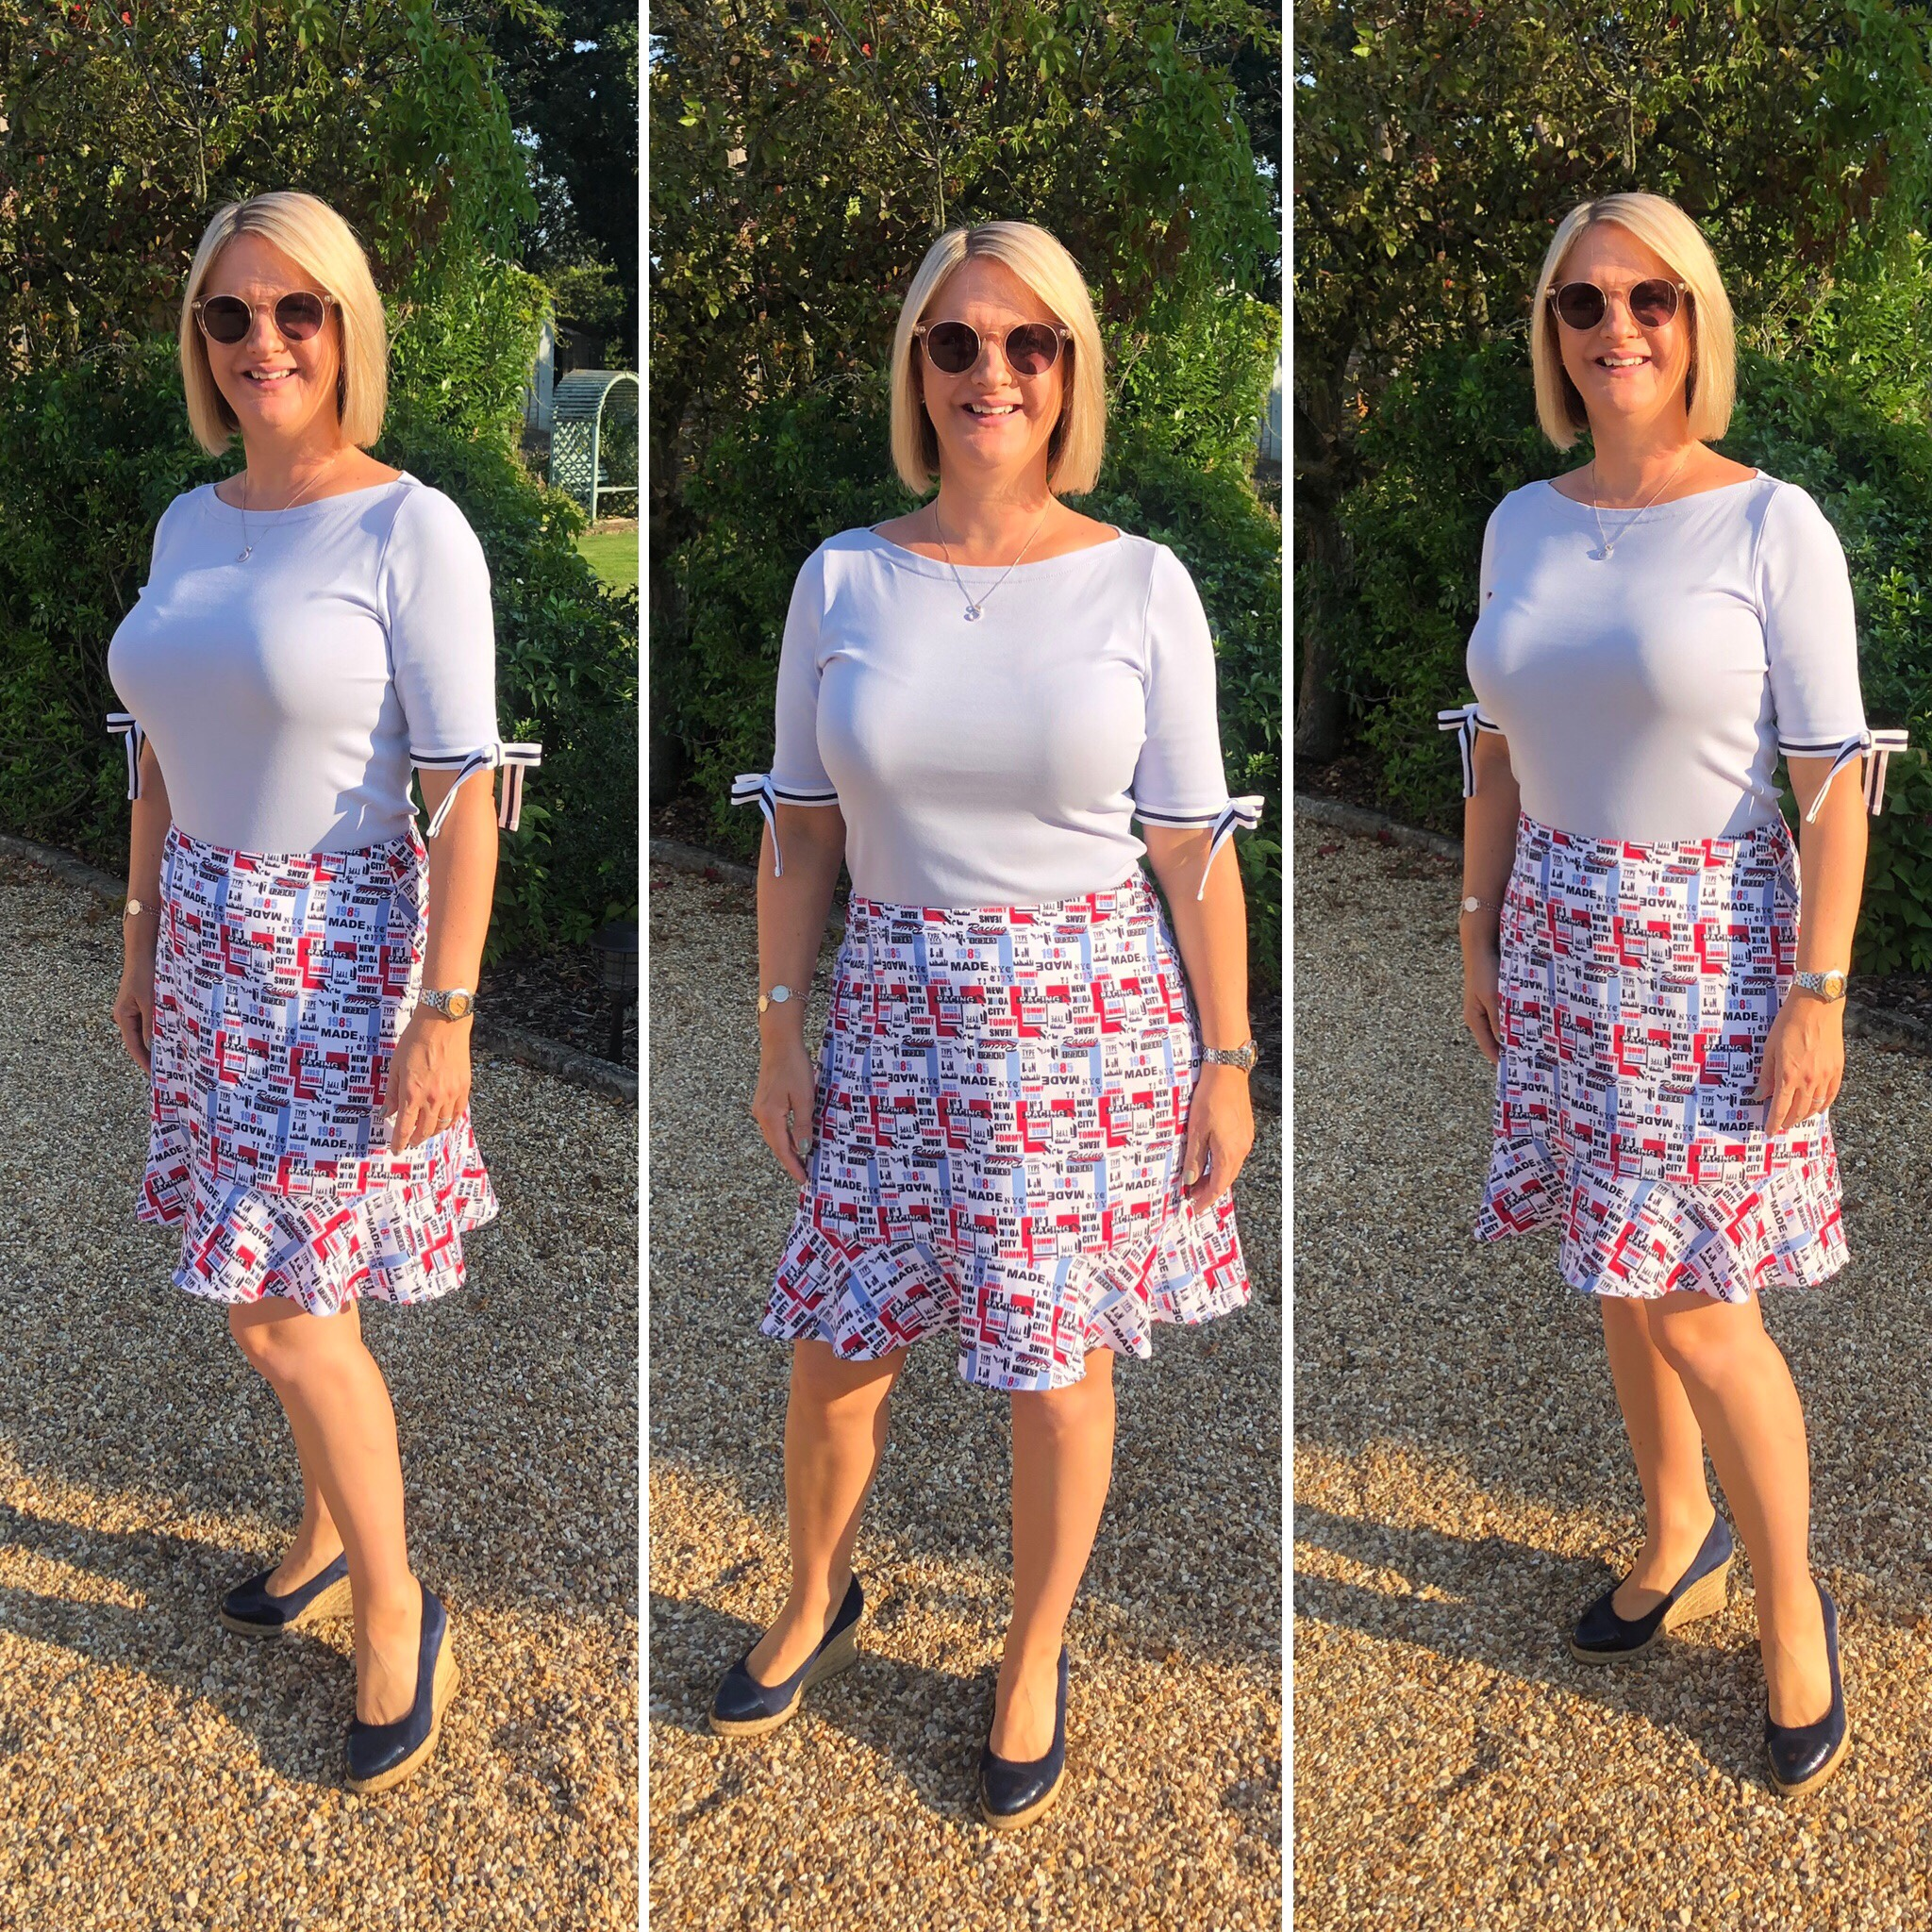 Top from Ralph Lauren, Skirt from Tommy Hilfiger, Shoes from Russell and Bromley.